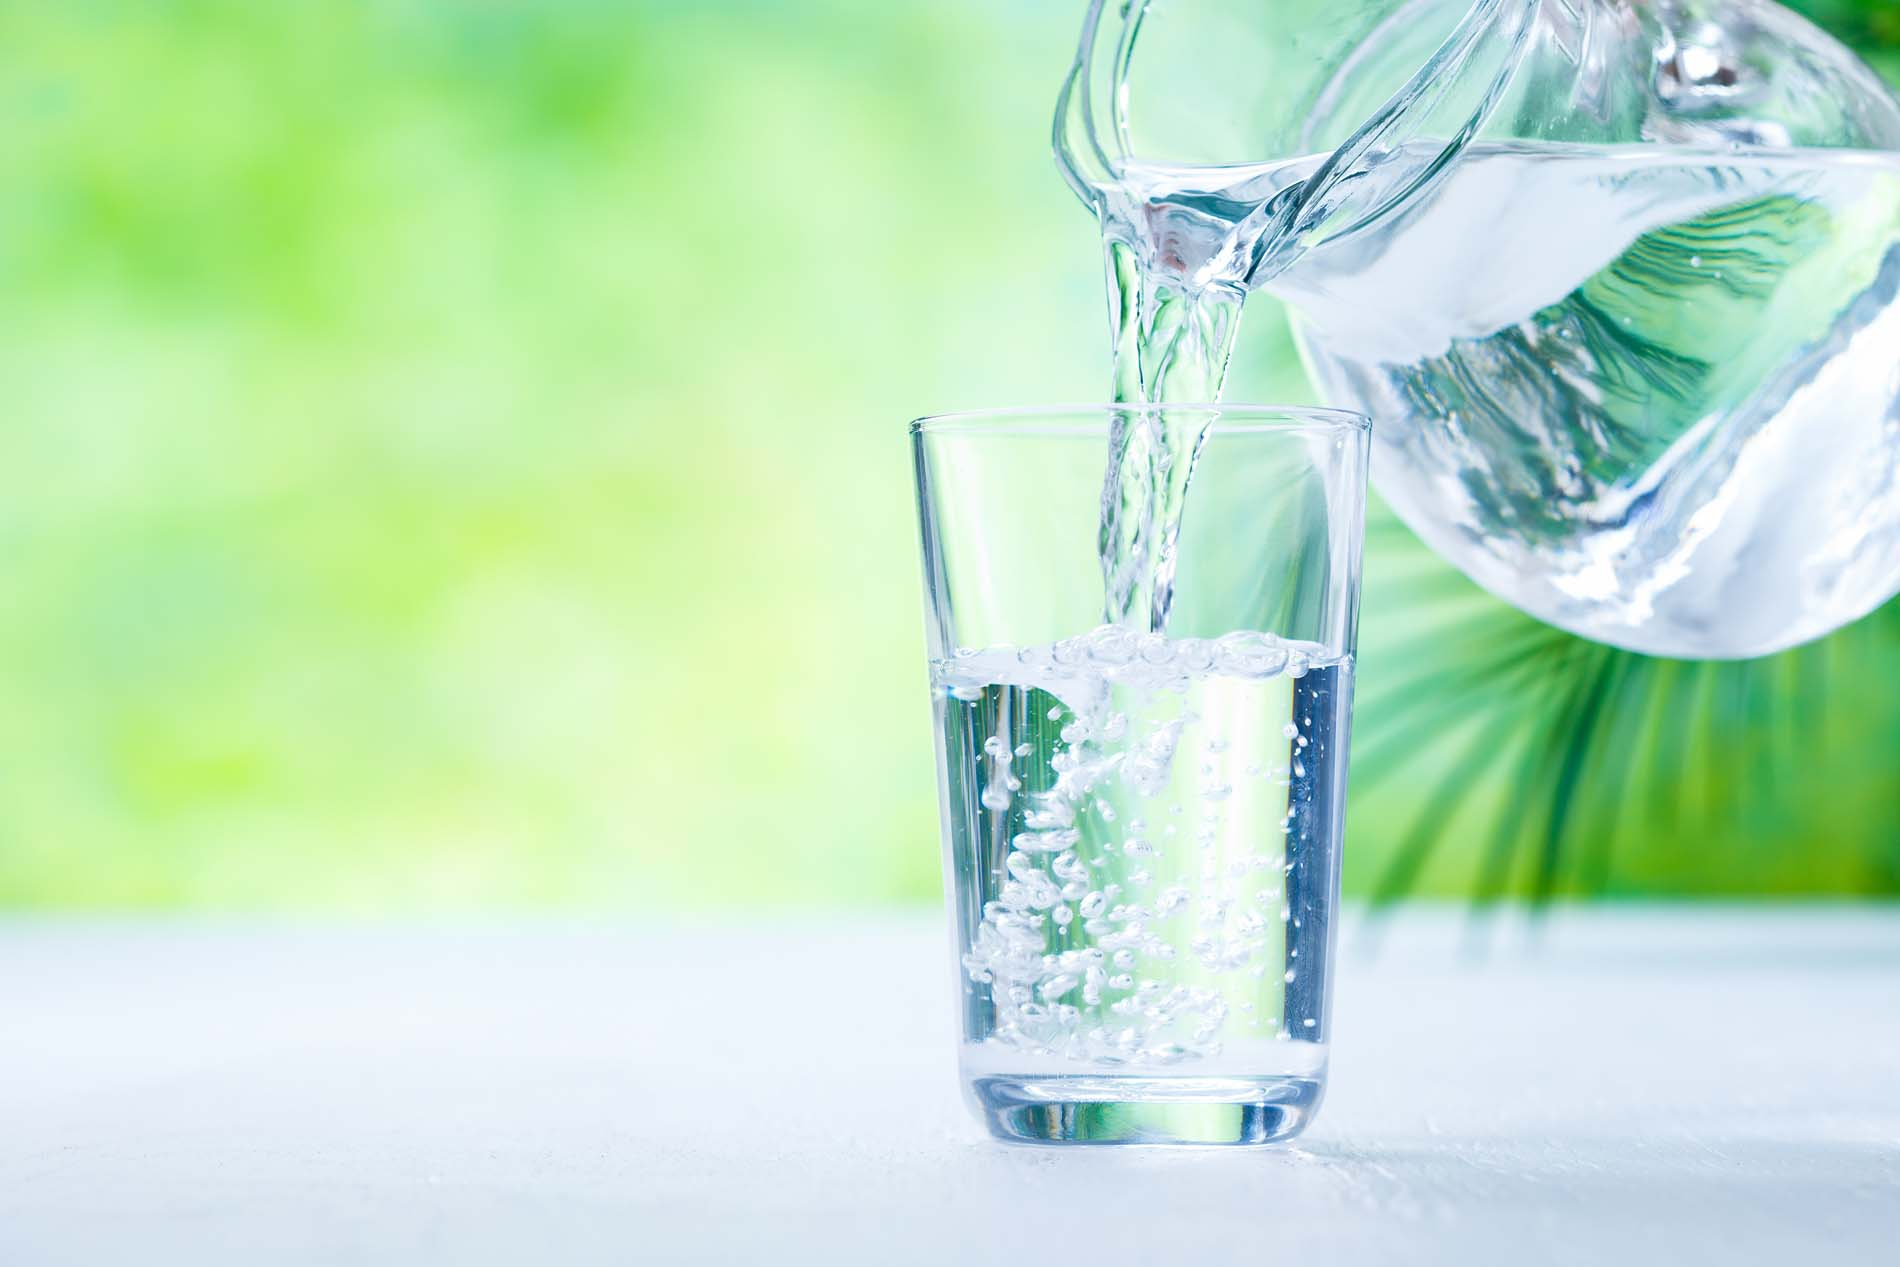 Chemicals and Contaminants that Travel in Unfiltered Water Flow into Your Home